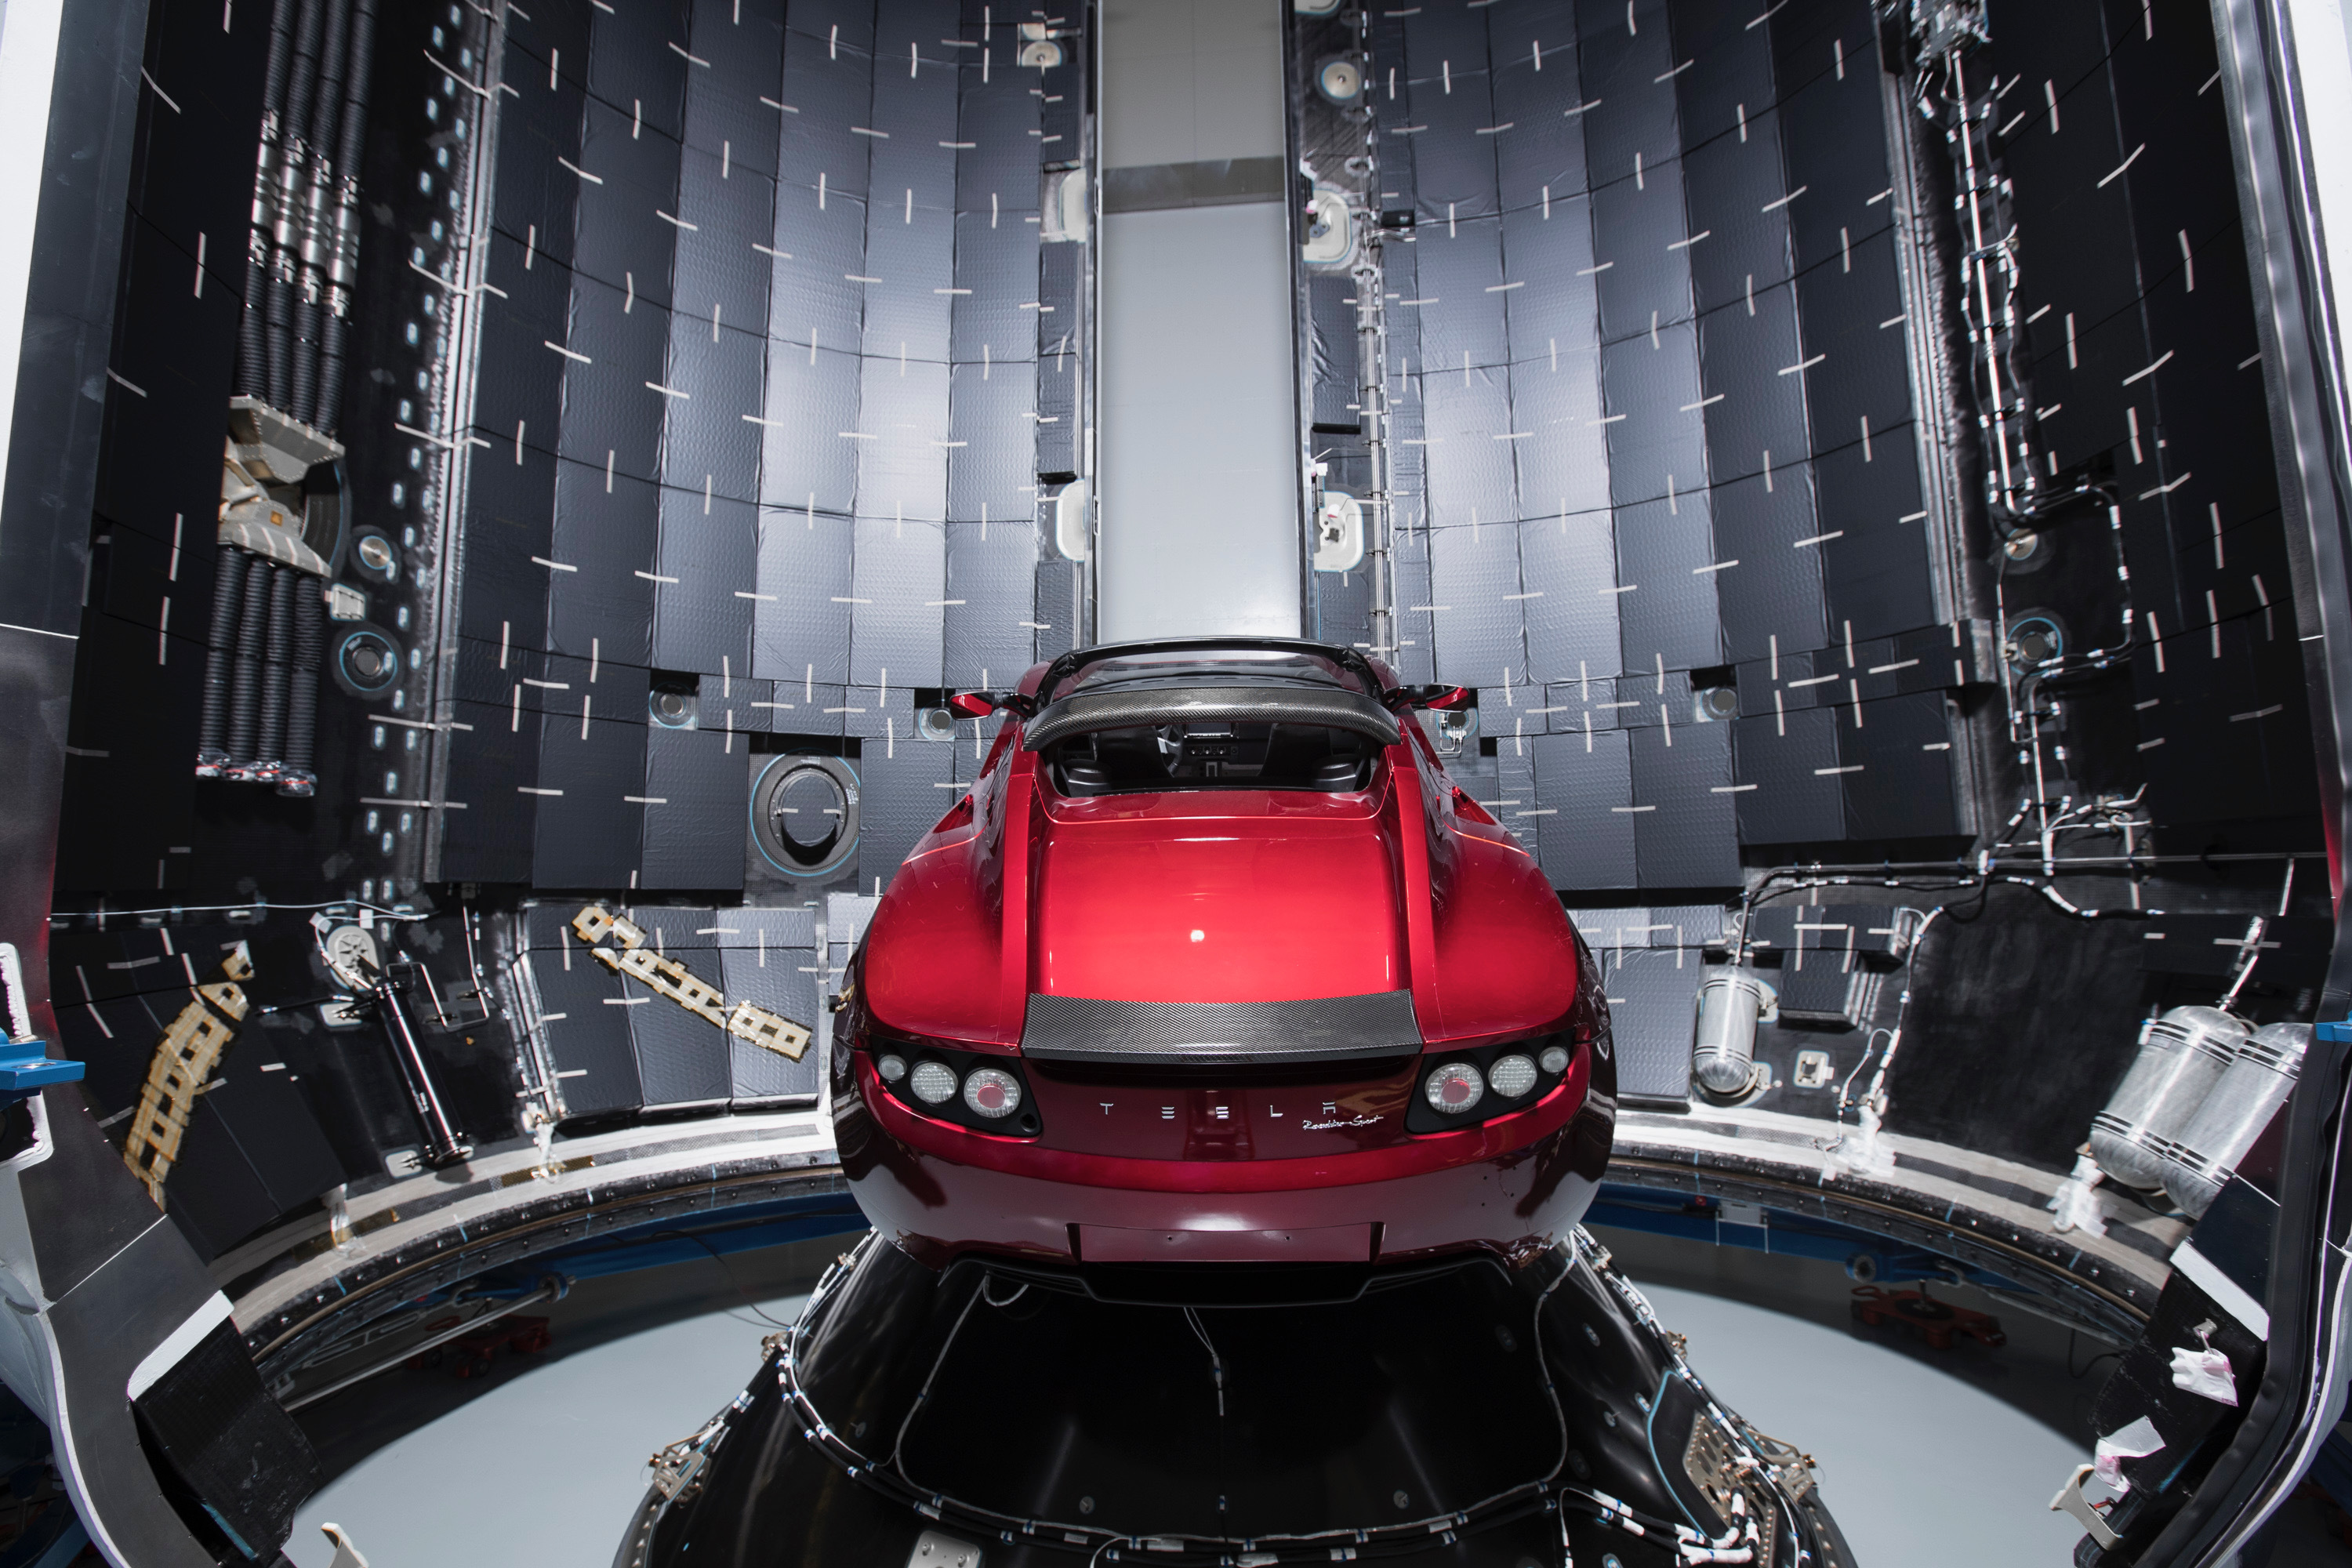 Let's talk about Elon Musk launching his Tesla into space | The